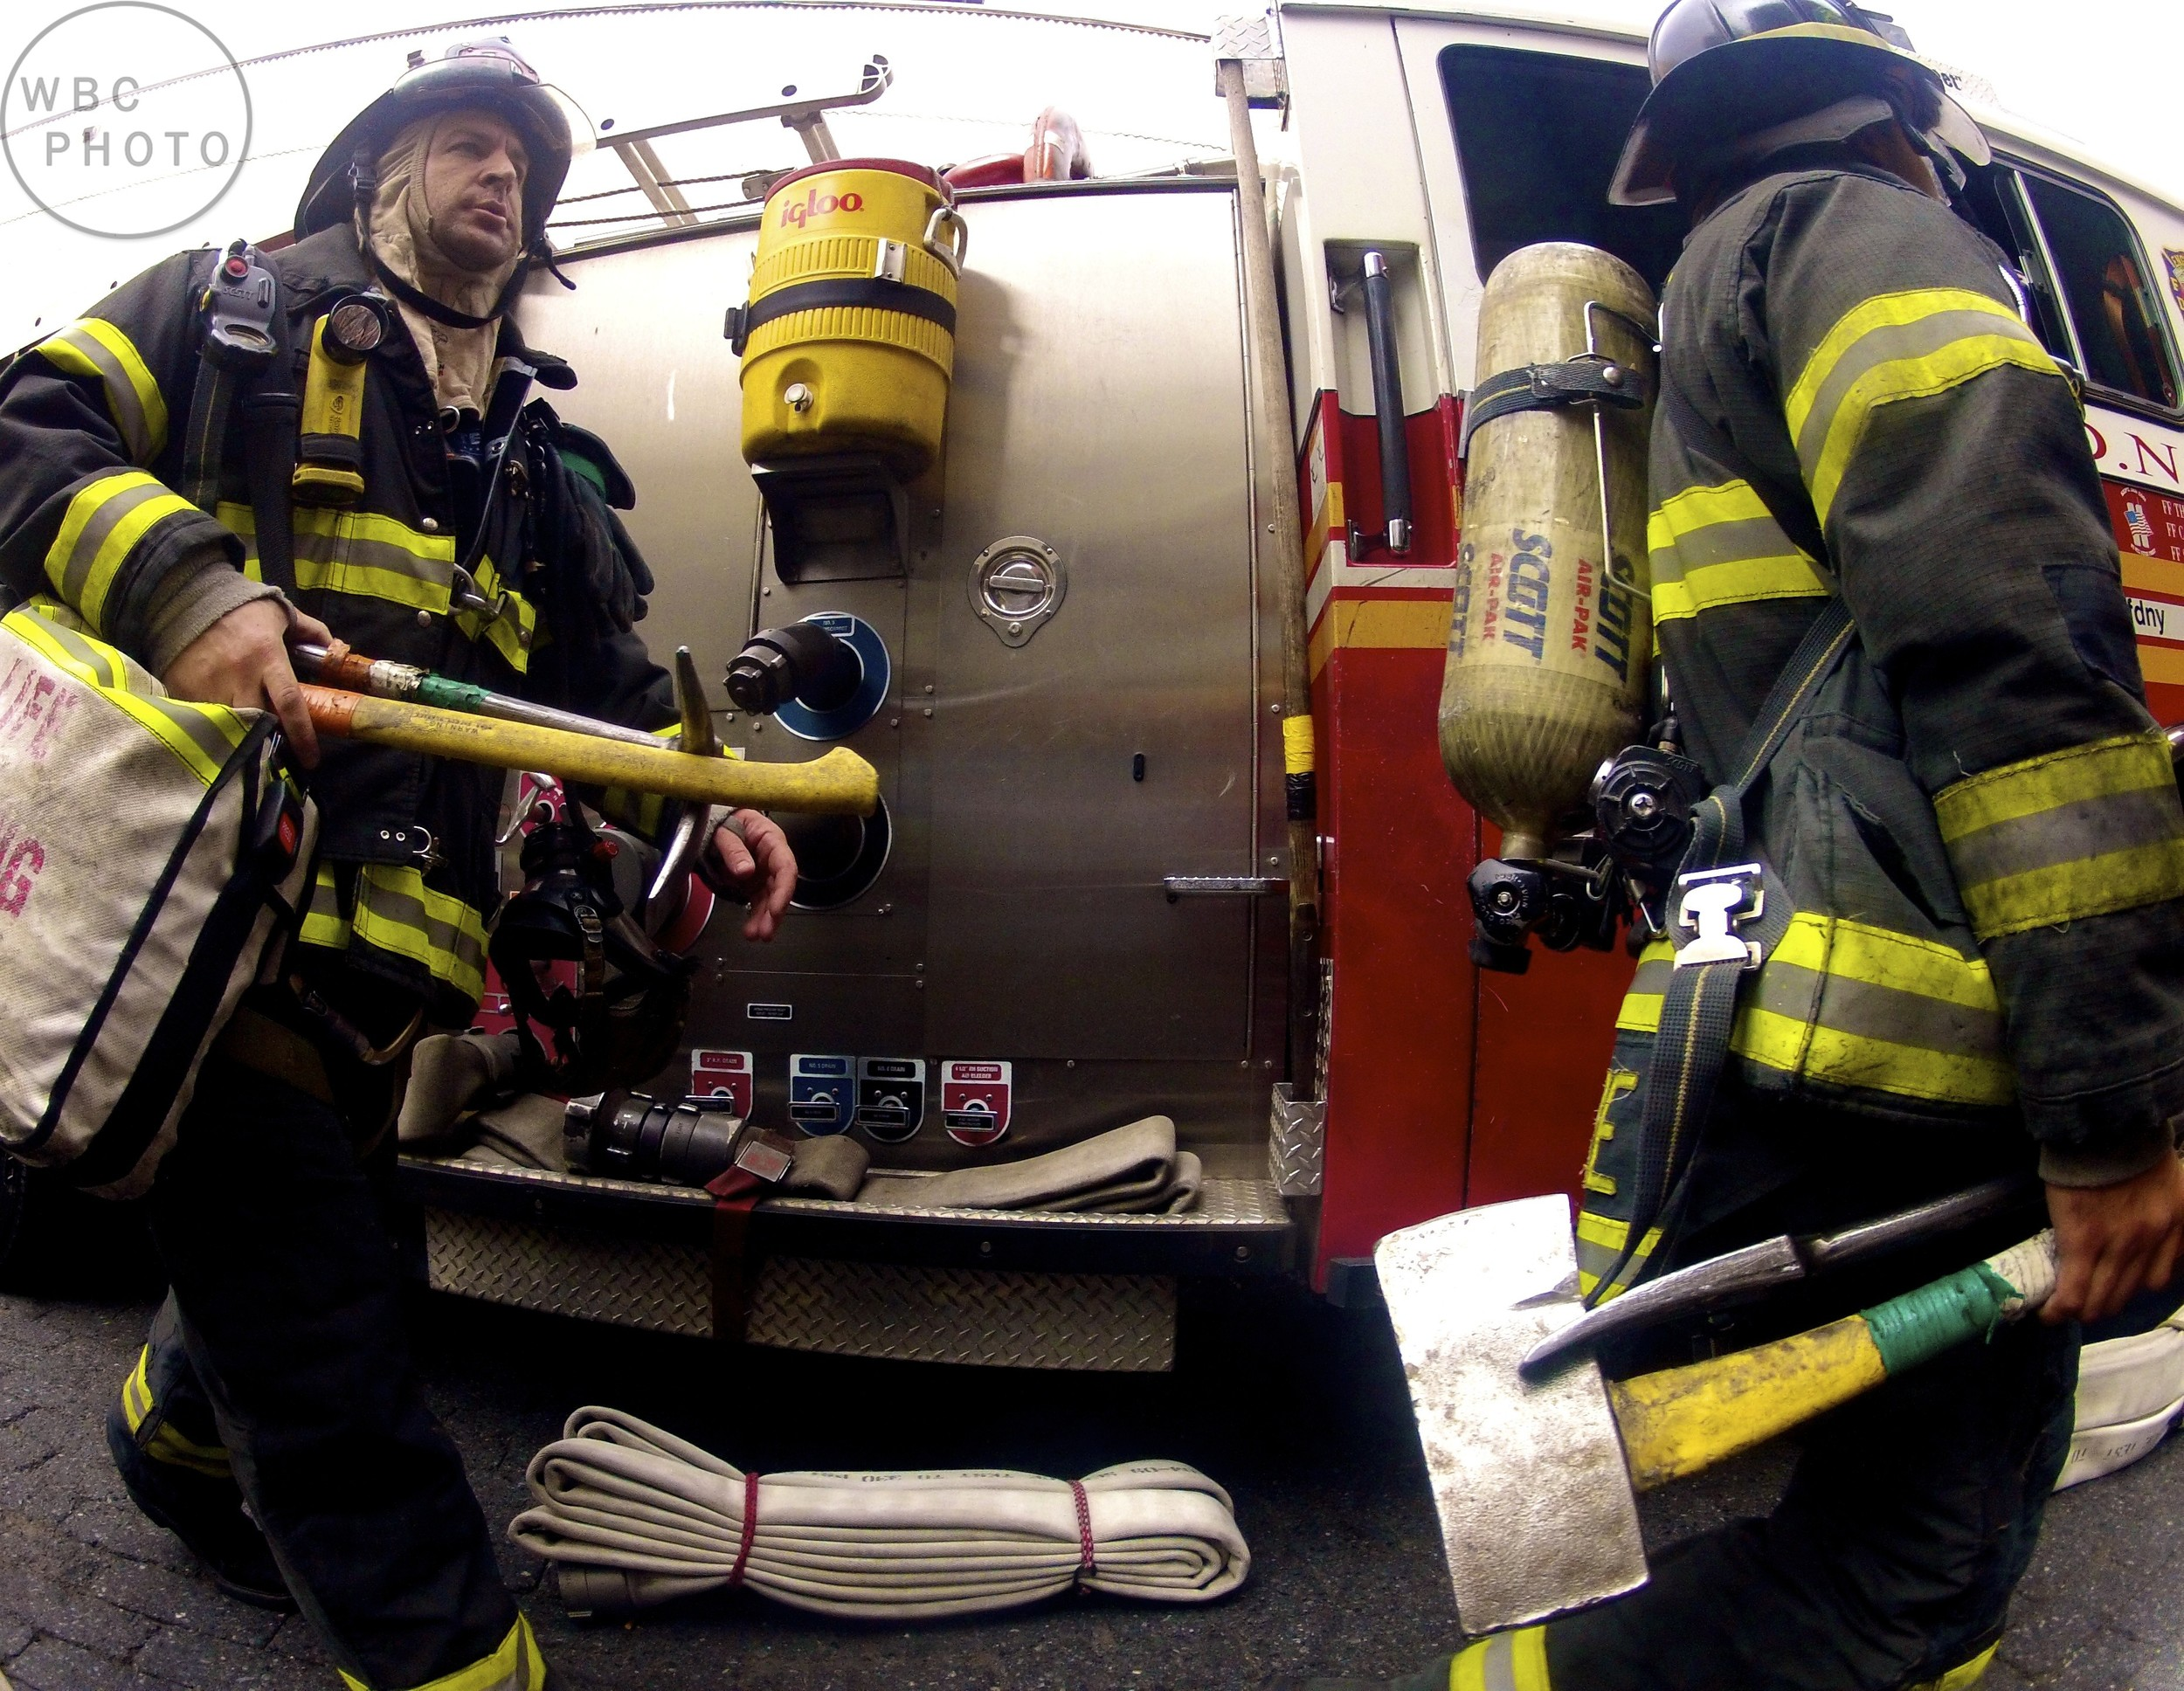 firefighters-responding-at-south-street-seaport-nyc-wbc.jpg